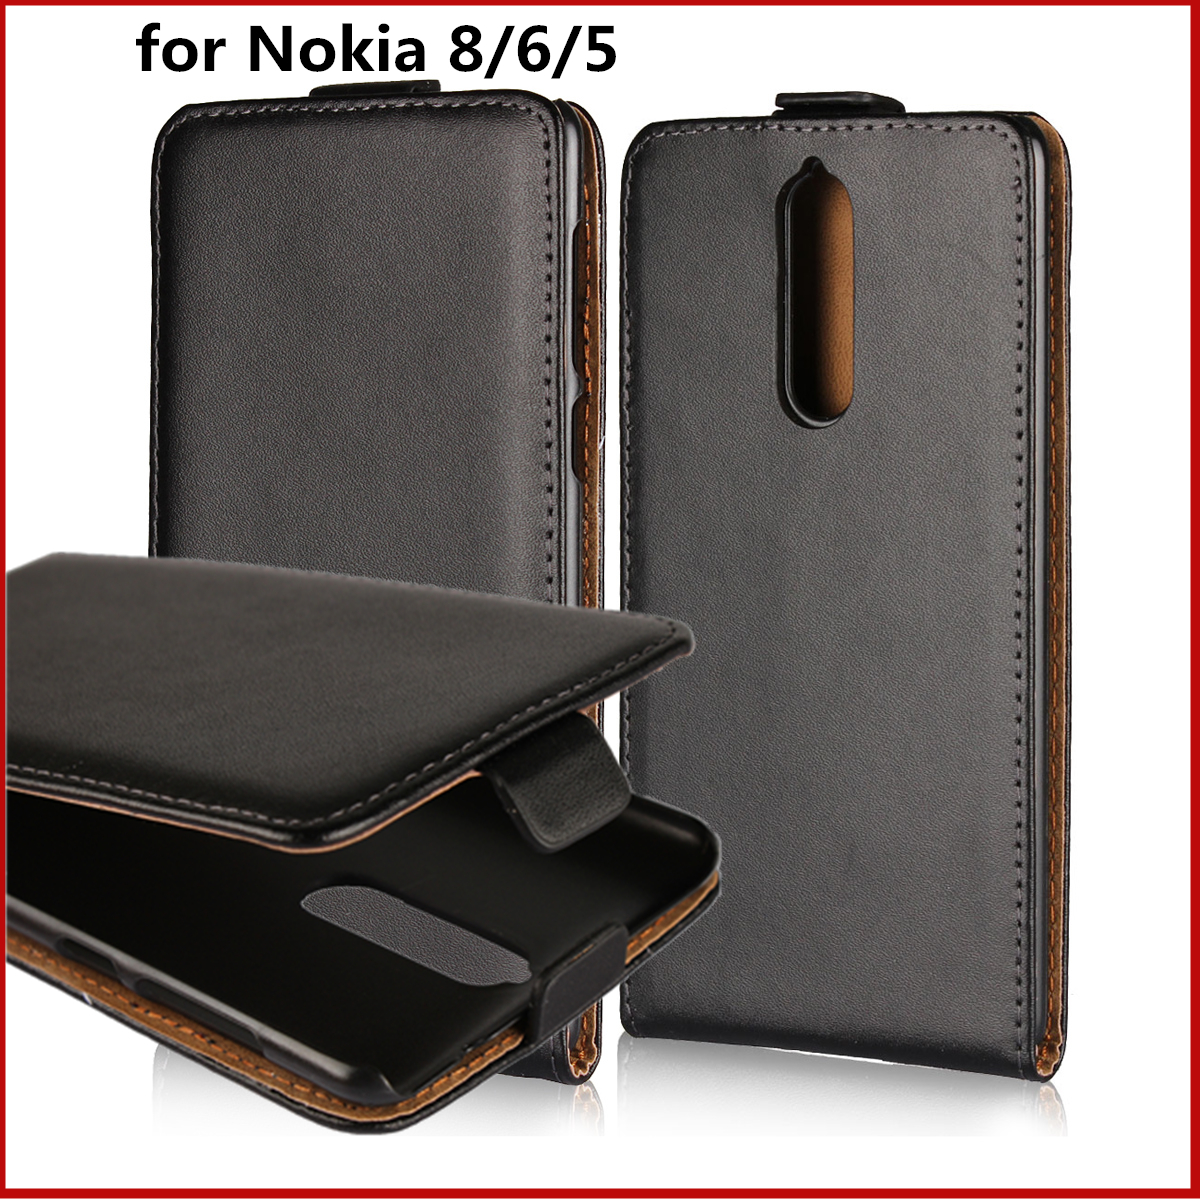 buy popular 0e9aa b39be Clamshell phone case for Nokia 8 6 5 leather case ultra thin Magnetic  adsorption flip coevr case for Nokia 6 5 8